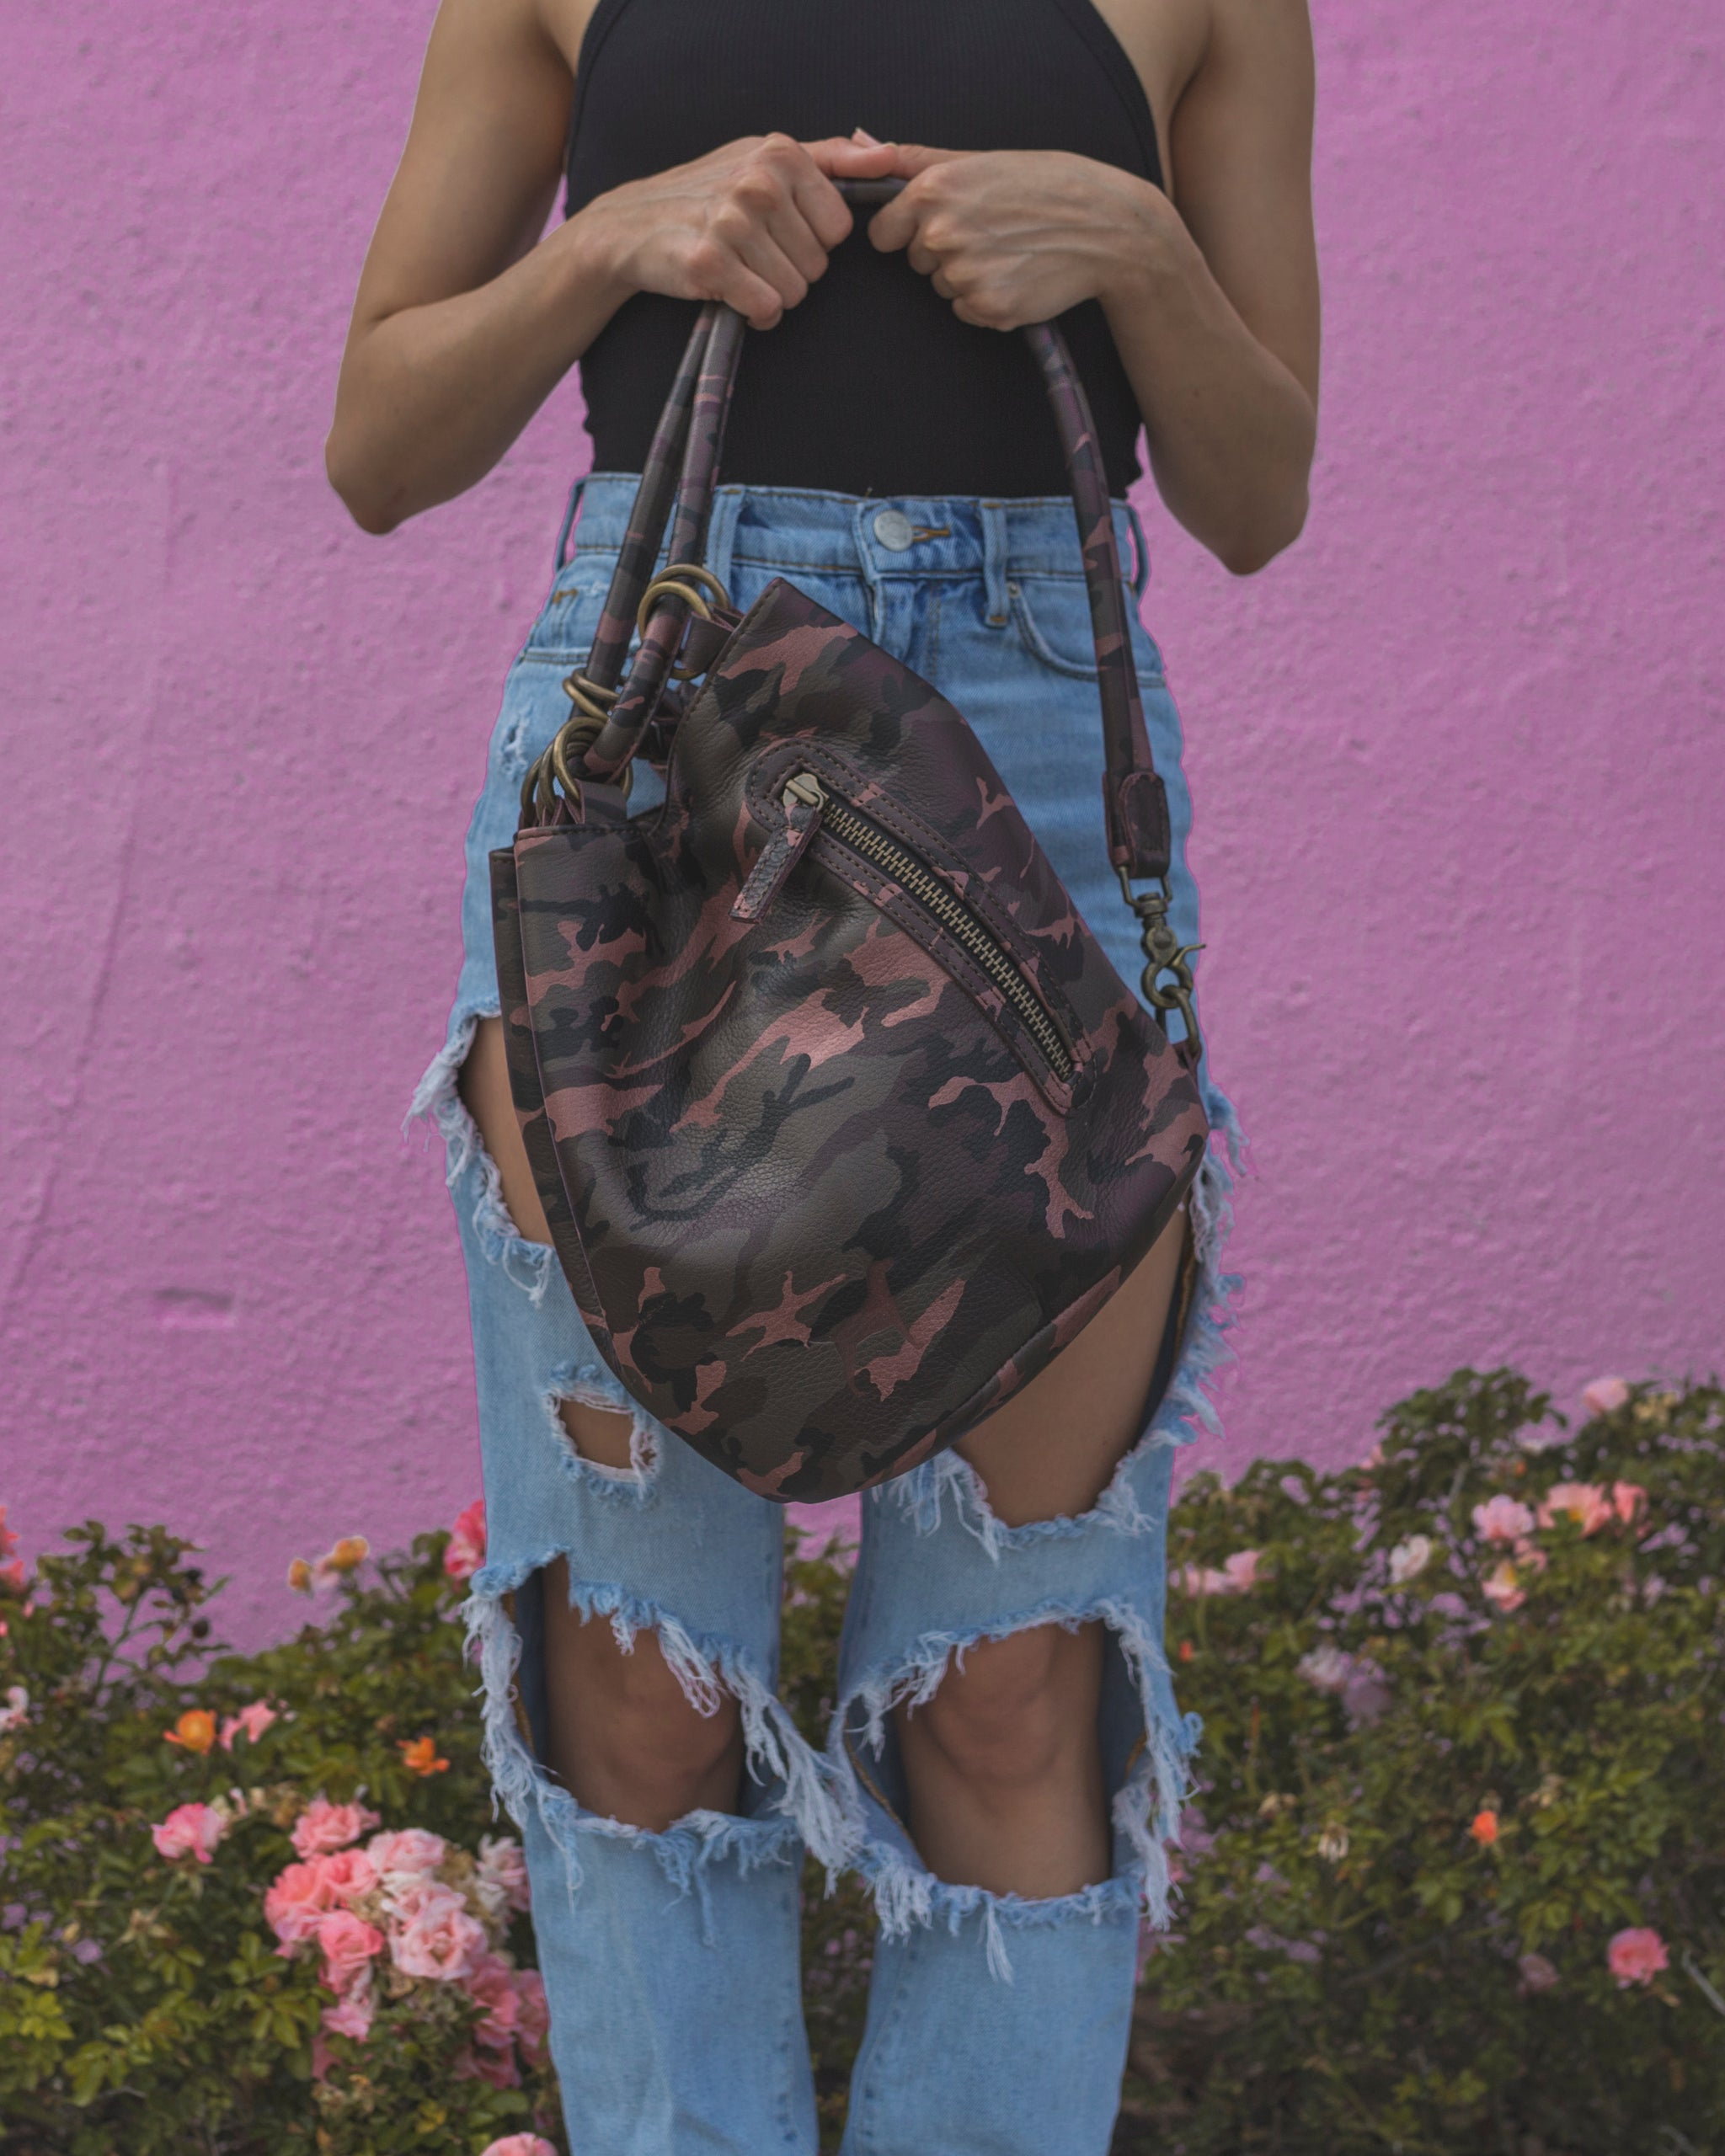 The Menage Bag - 3 way bag (Tote, over the shoulder and crossbody)